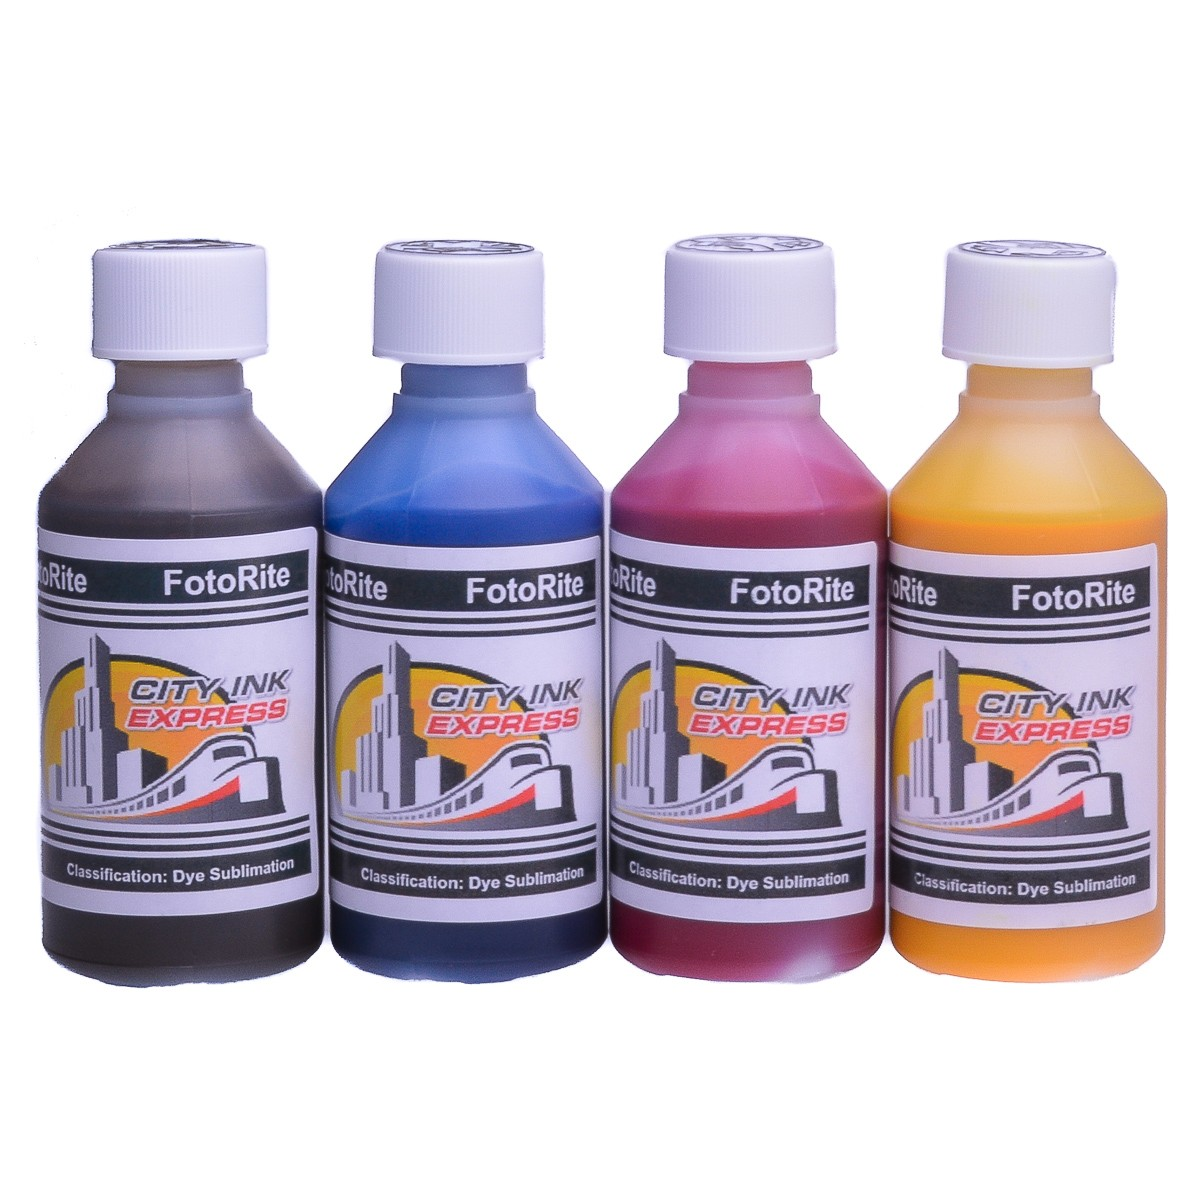 Dye Sublimation ink system - Fits Epson BX610FW Printer